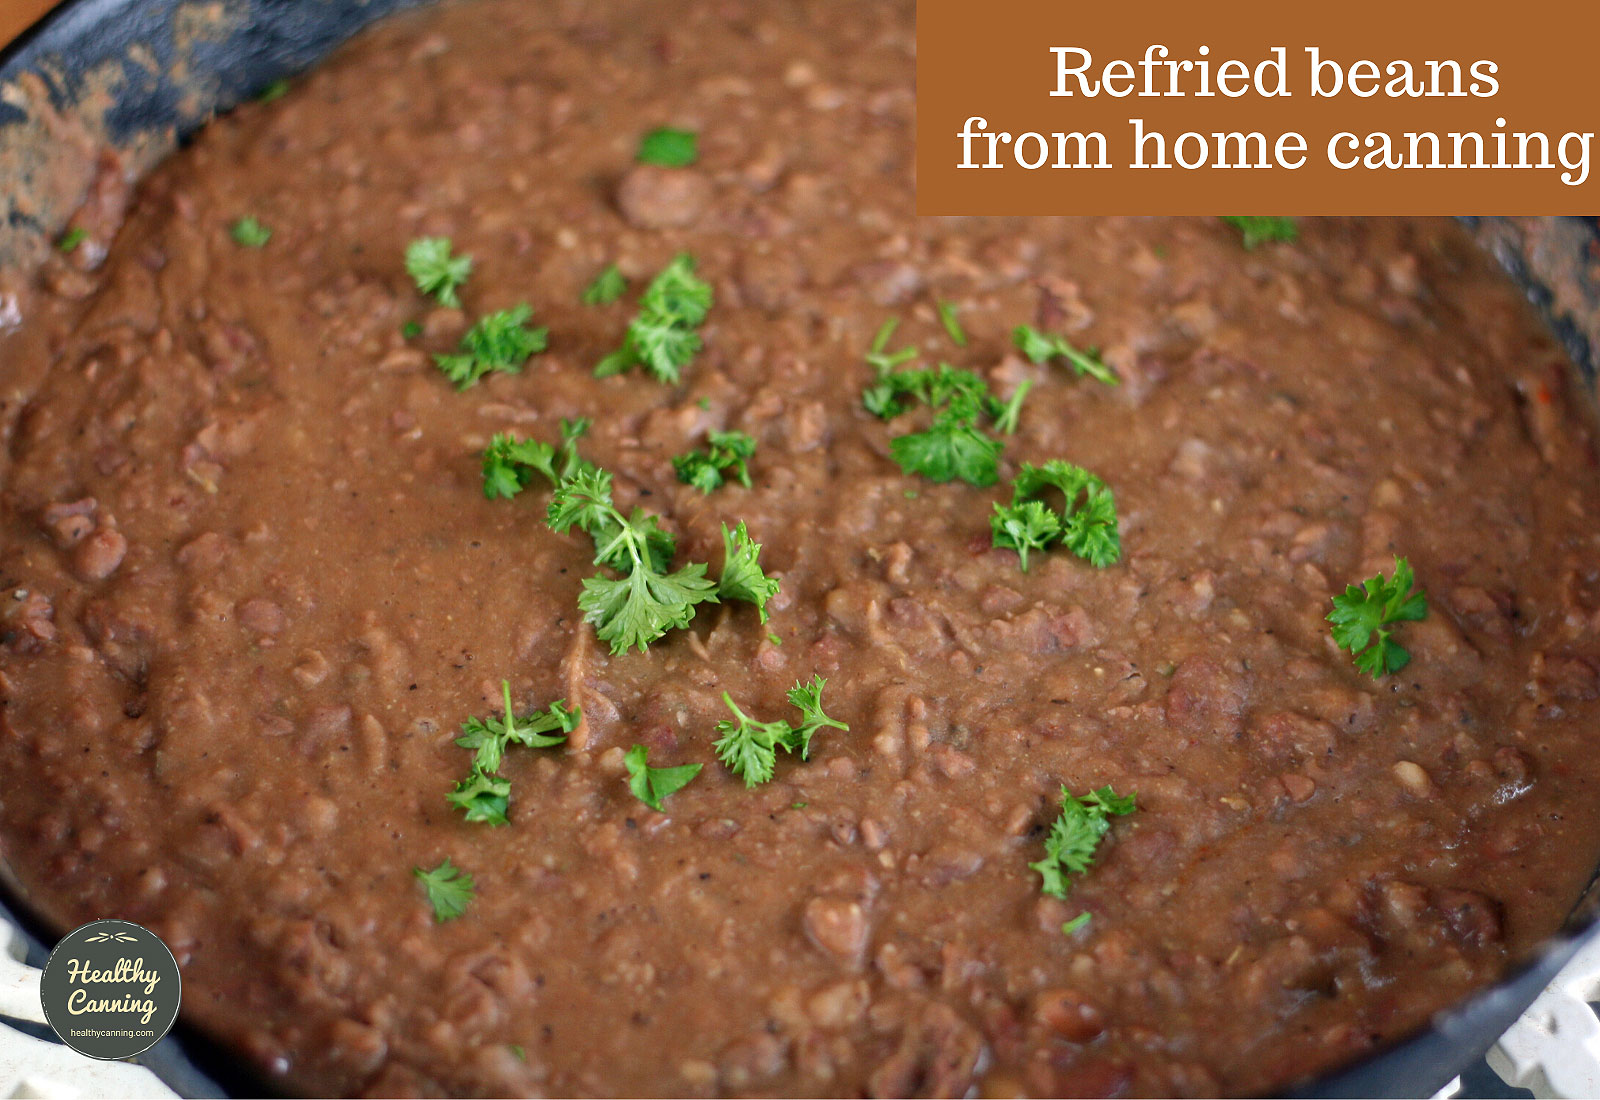 Refried beans from home canning